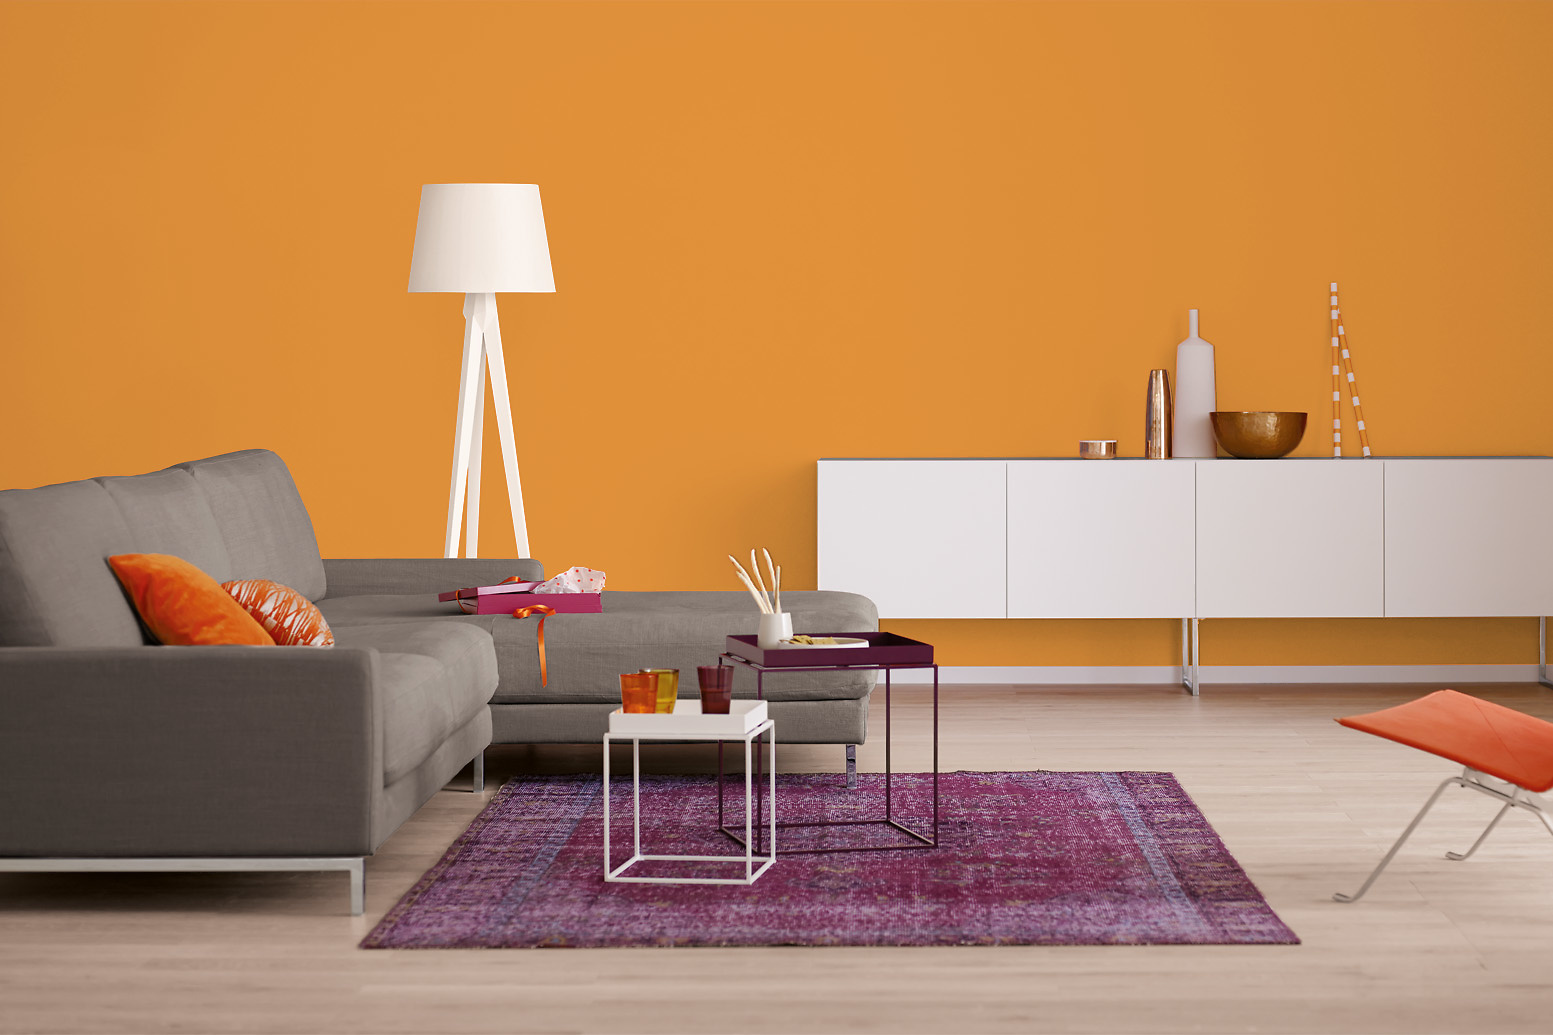 innenfarbe in orange streichen alpina farbrezepte. Black Bedroom Furniture Sets. Home Design Ideas